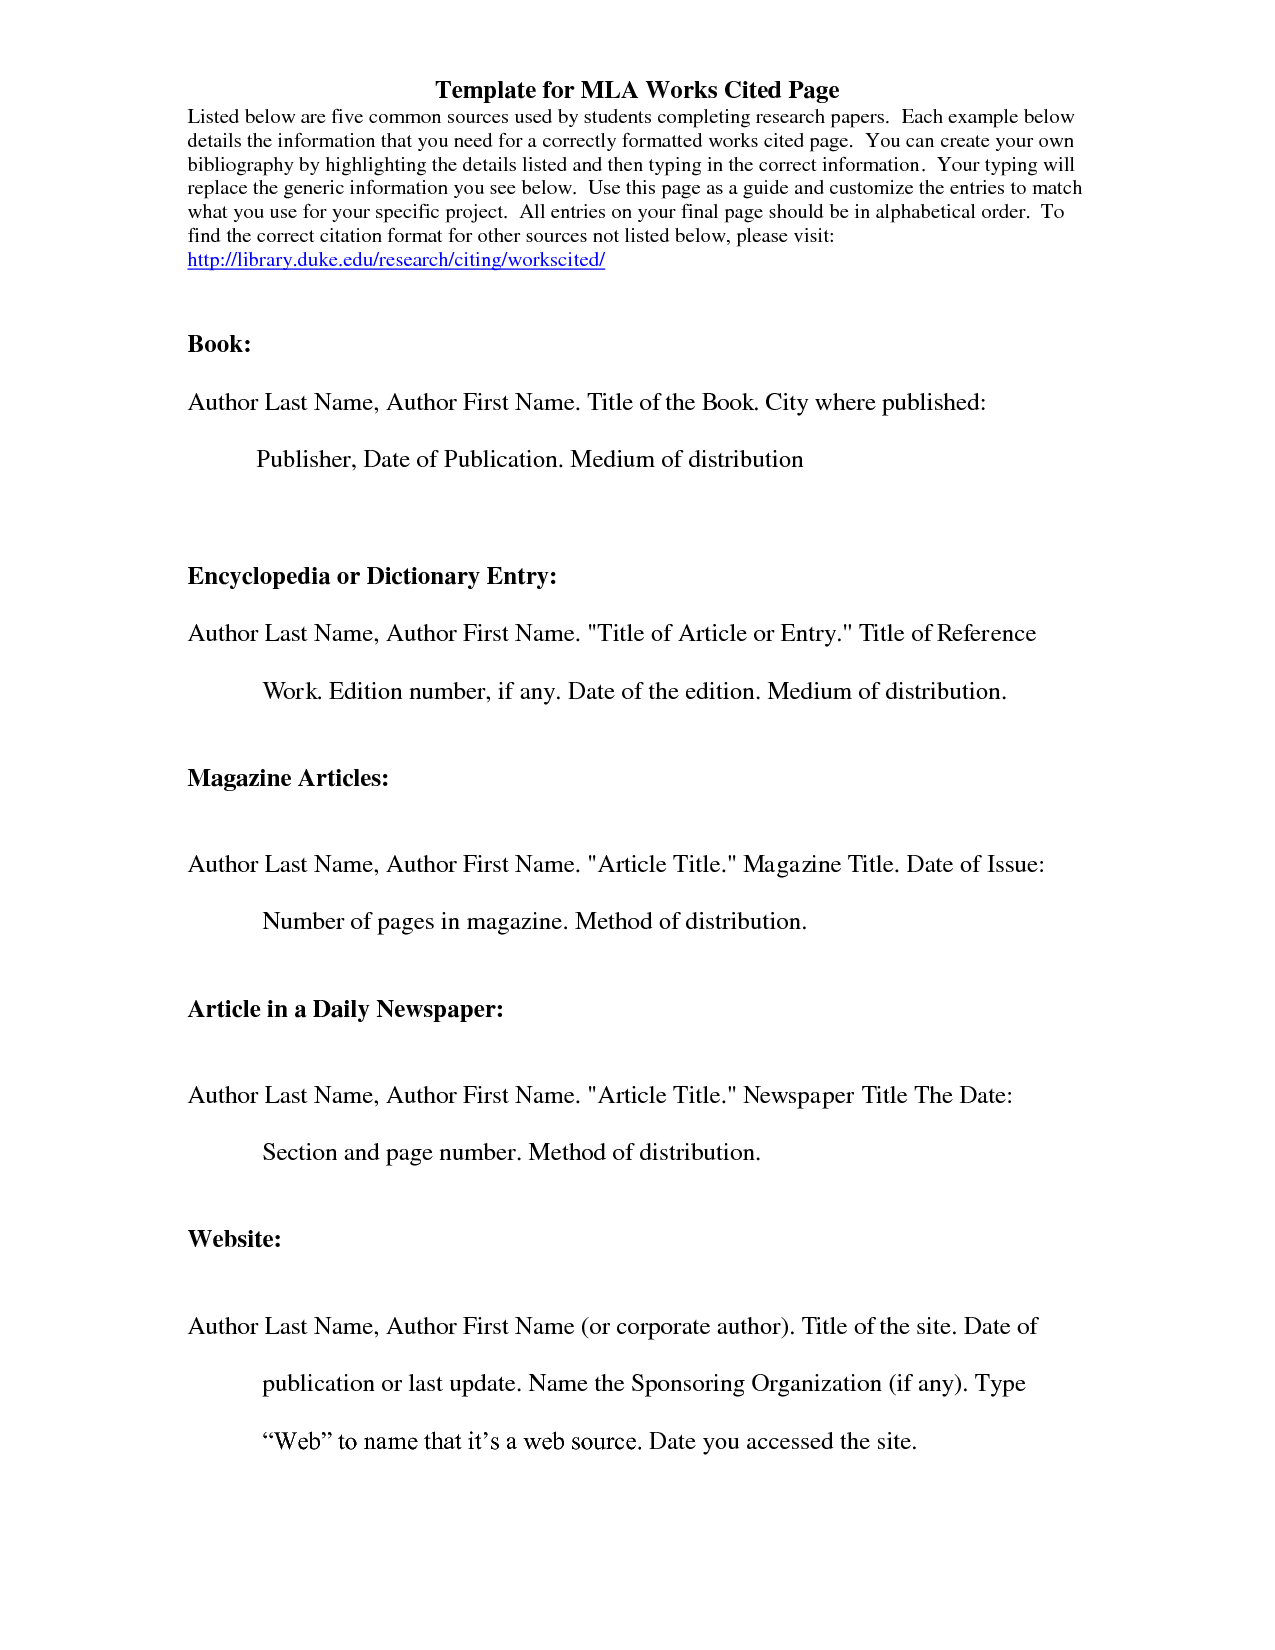 worksheet Works Cited Worksheet work cited template mla movie visual samples of all different templates on pinterest